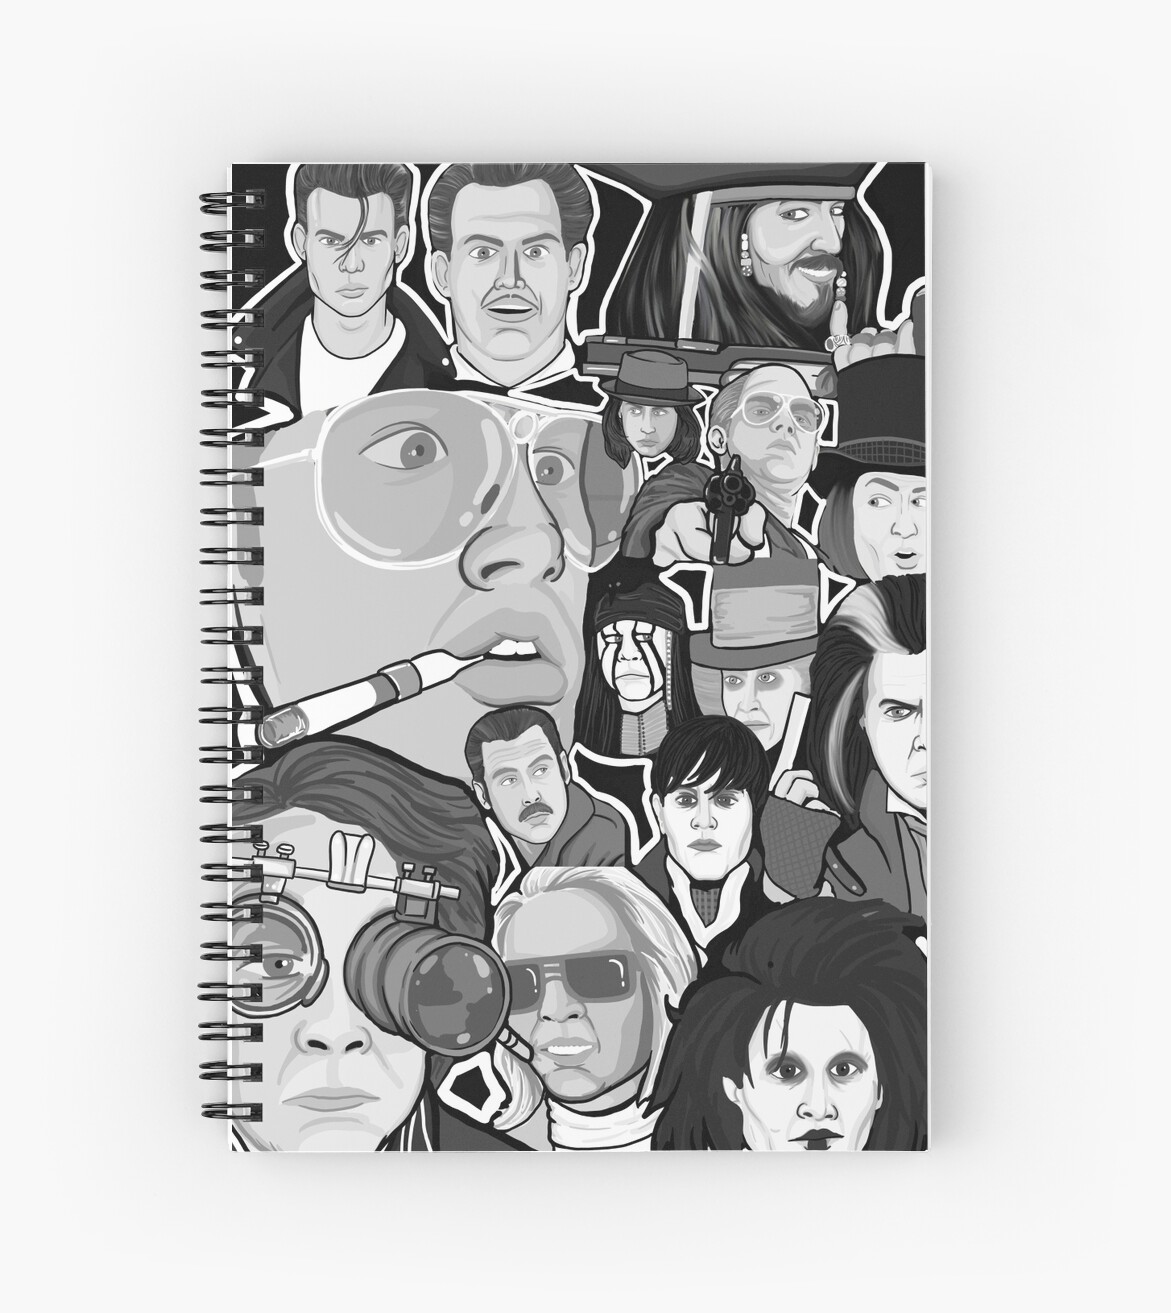 Johnny Depp Character Collage Spiral Notebooks By Gjnilespop